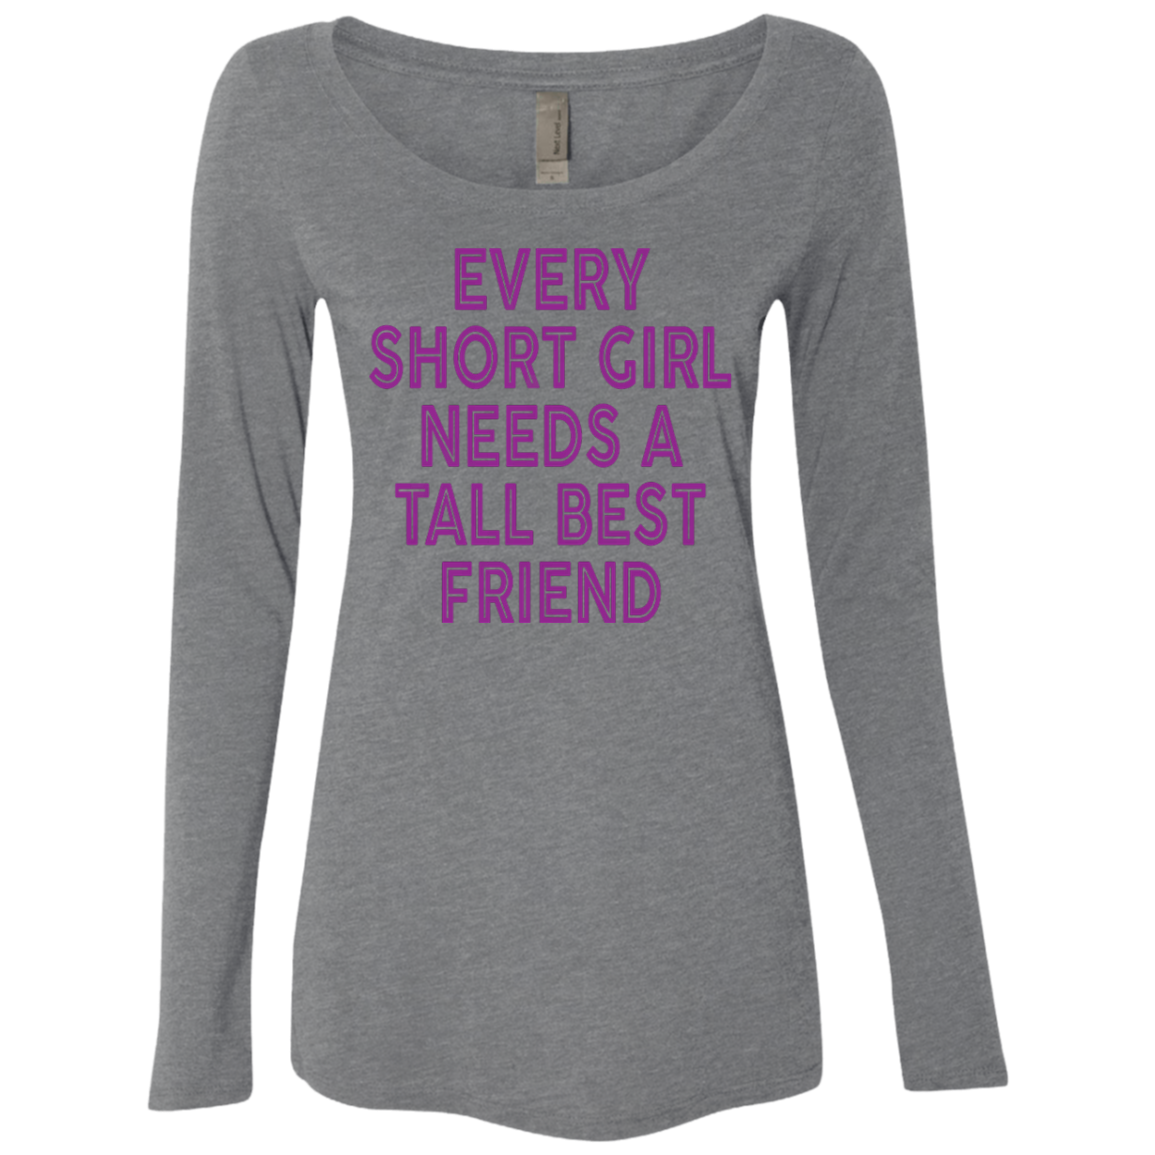 Every Short Girl Needs A Tall Best Friend Women's Long Sleeve Tee